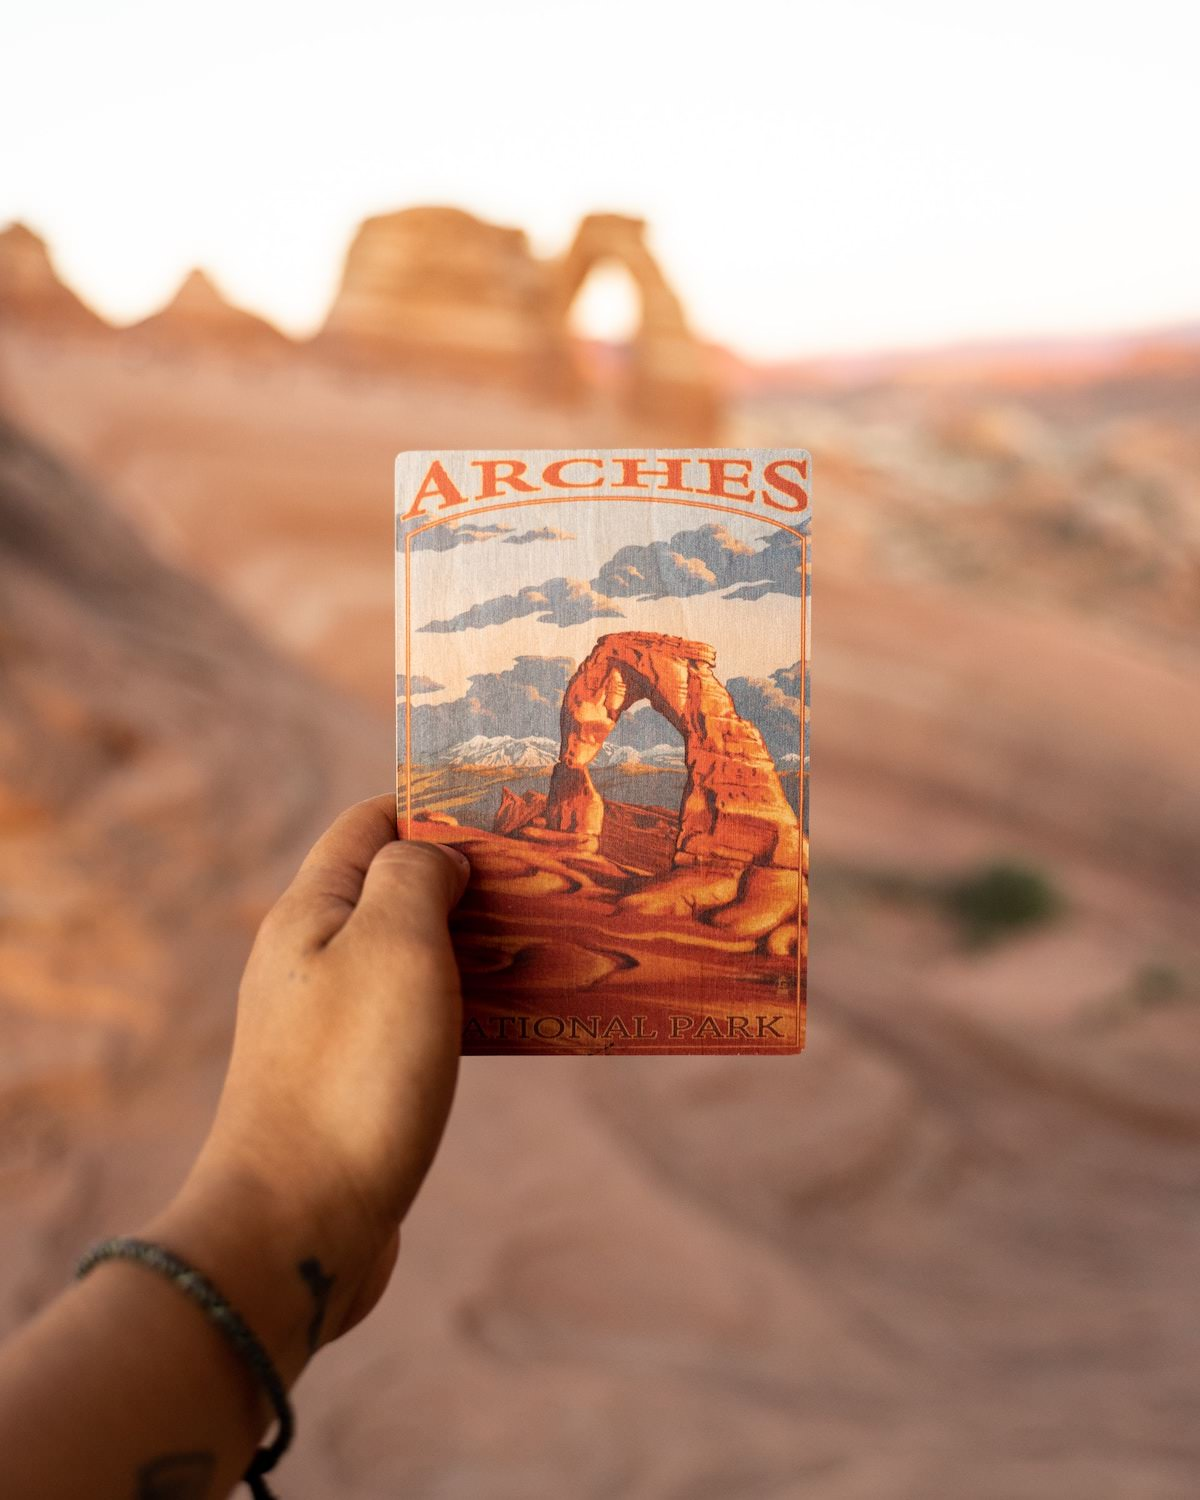 what are the best photography locations in arches national park